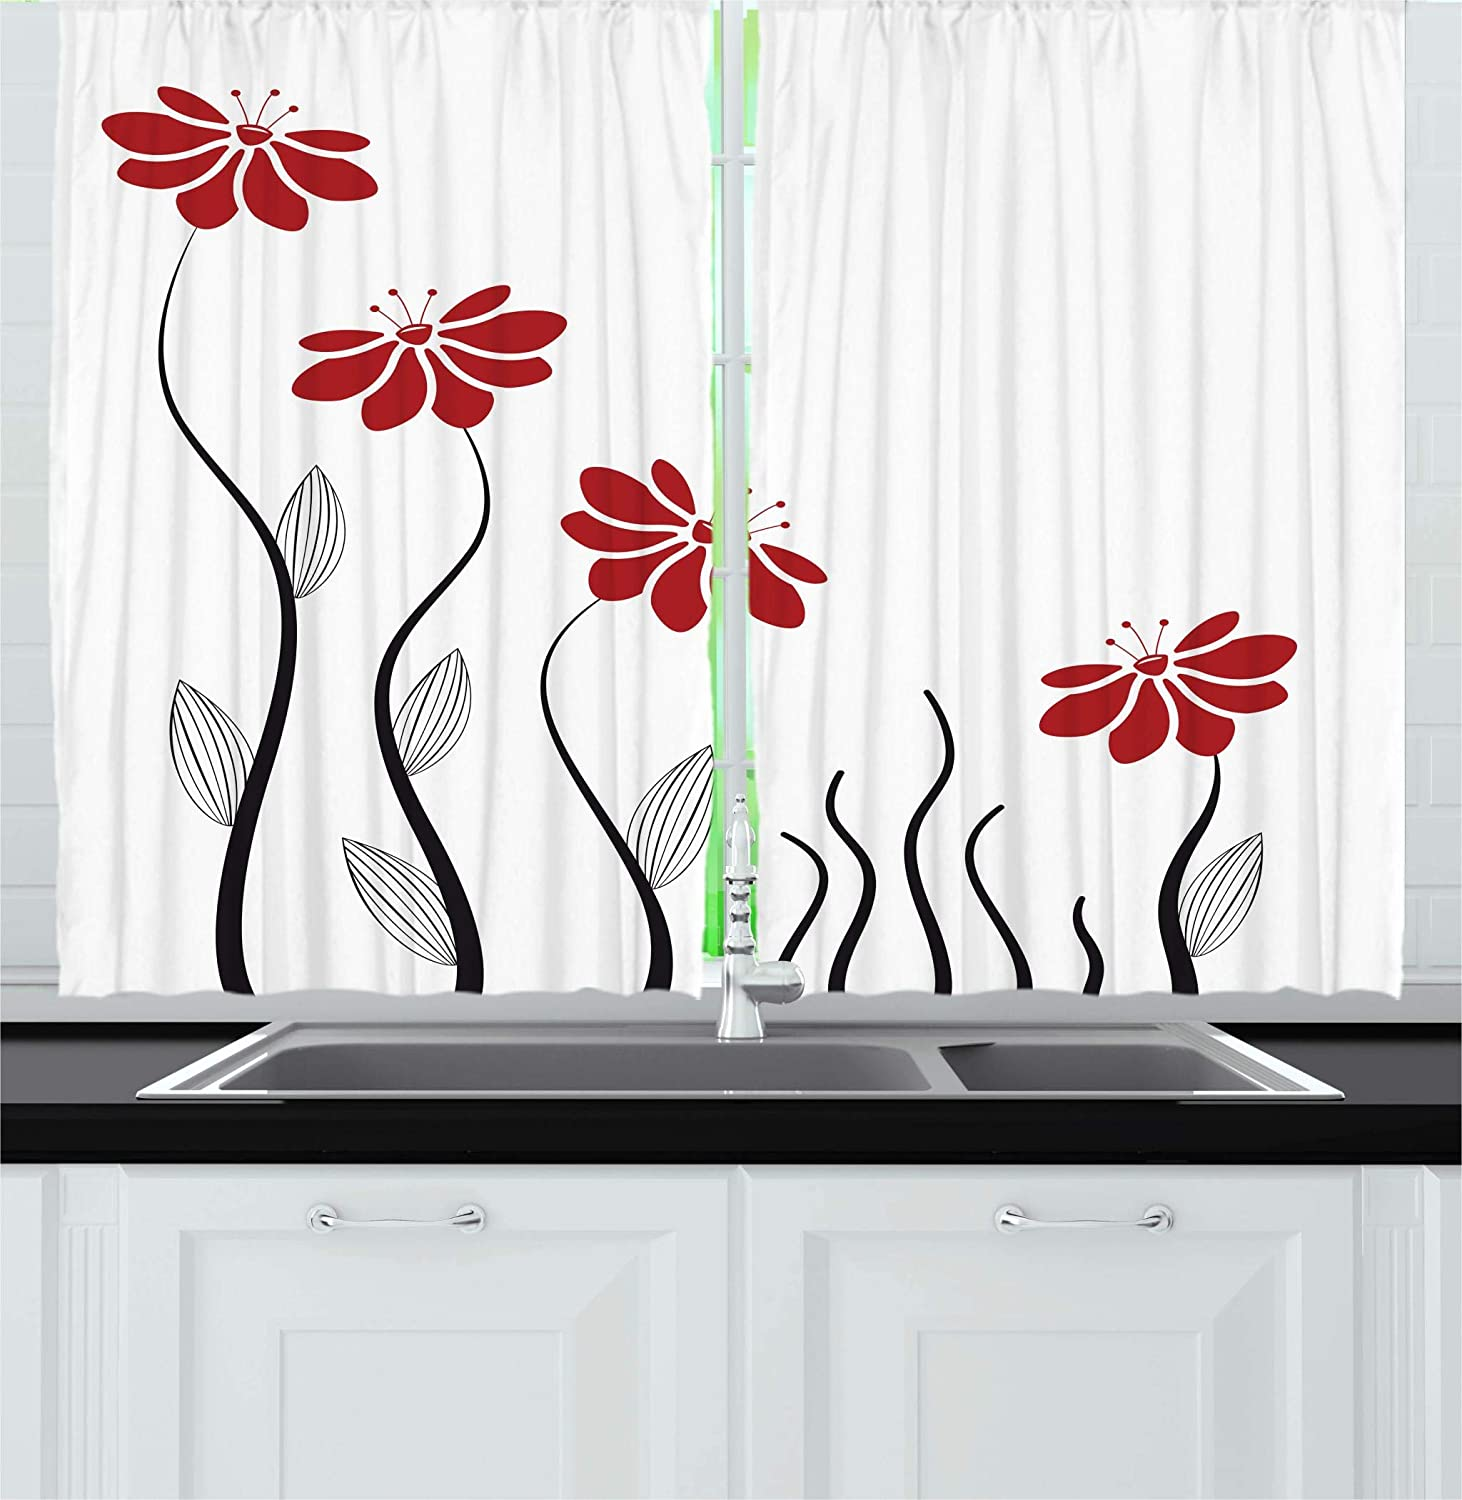 Ambesonne Flower Decor Kitchen Curtains, Floral Petals with Striped Leaves and Lines Modern Geometric Design Print, Window Drapes 2 Panels Set for Kitchen Cafe, 55 W X 39 L Inches, Red and Black